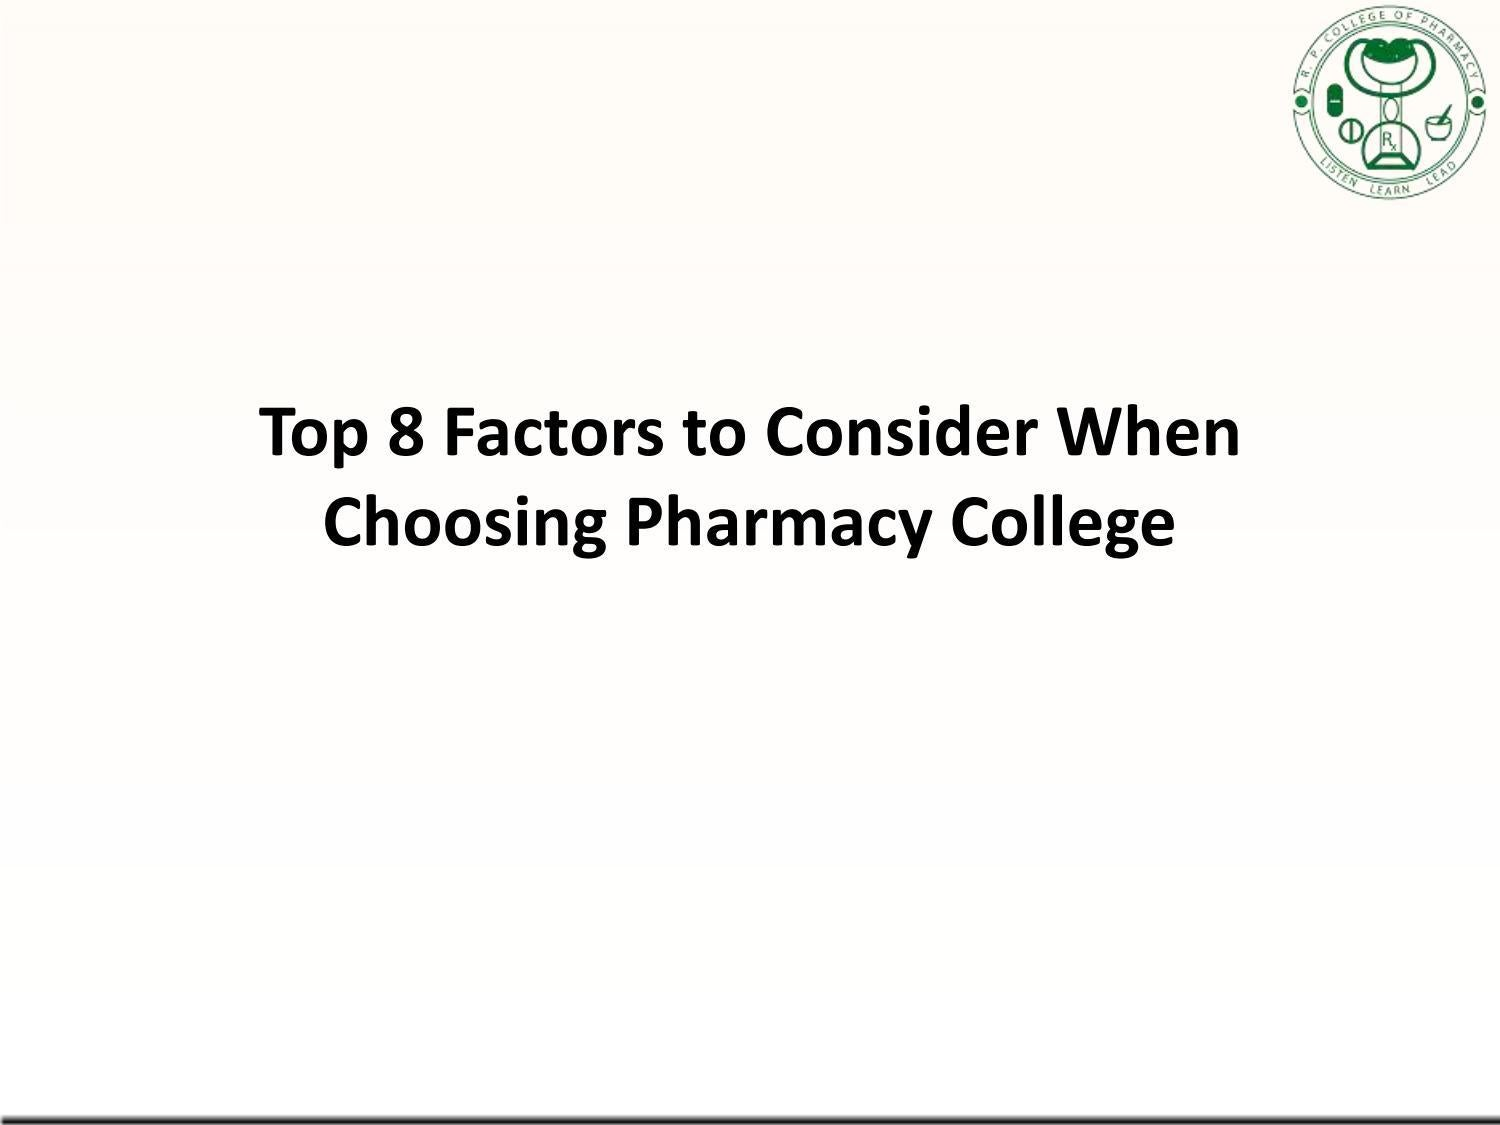 Top 8 Factors to Consider When Choosing Pharmacy College